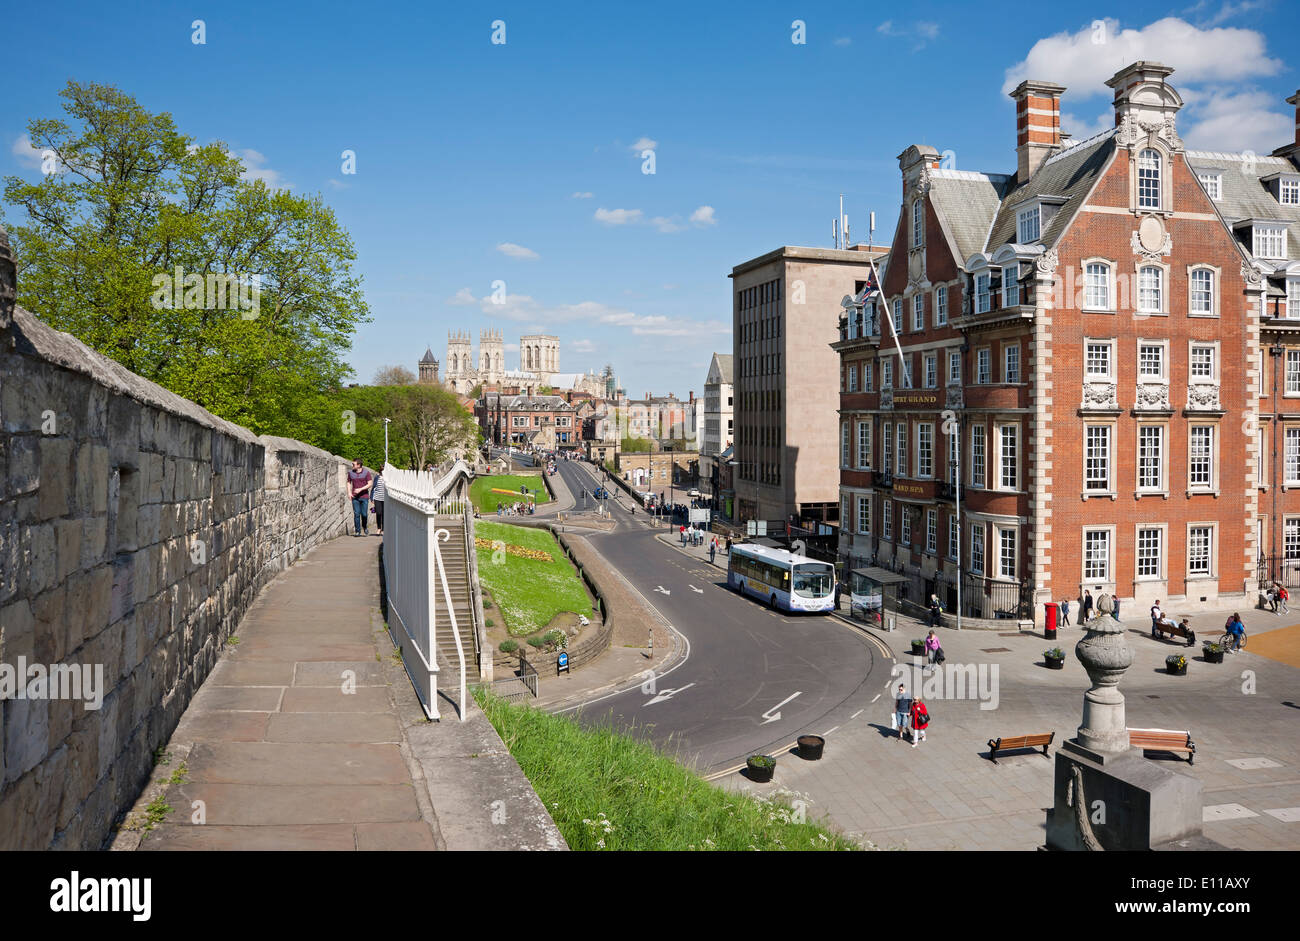 The Grand Hotel and Spa from the City Walls York North Yorkshire England UK United Kingdom GB Great Britain - Stock Image